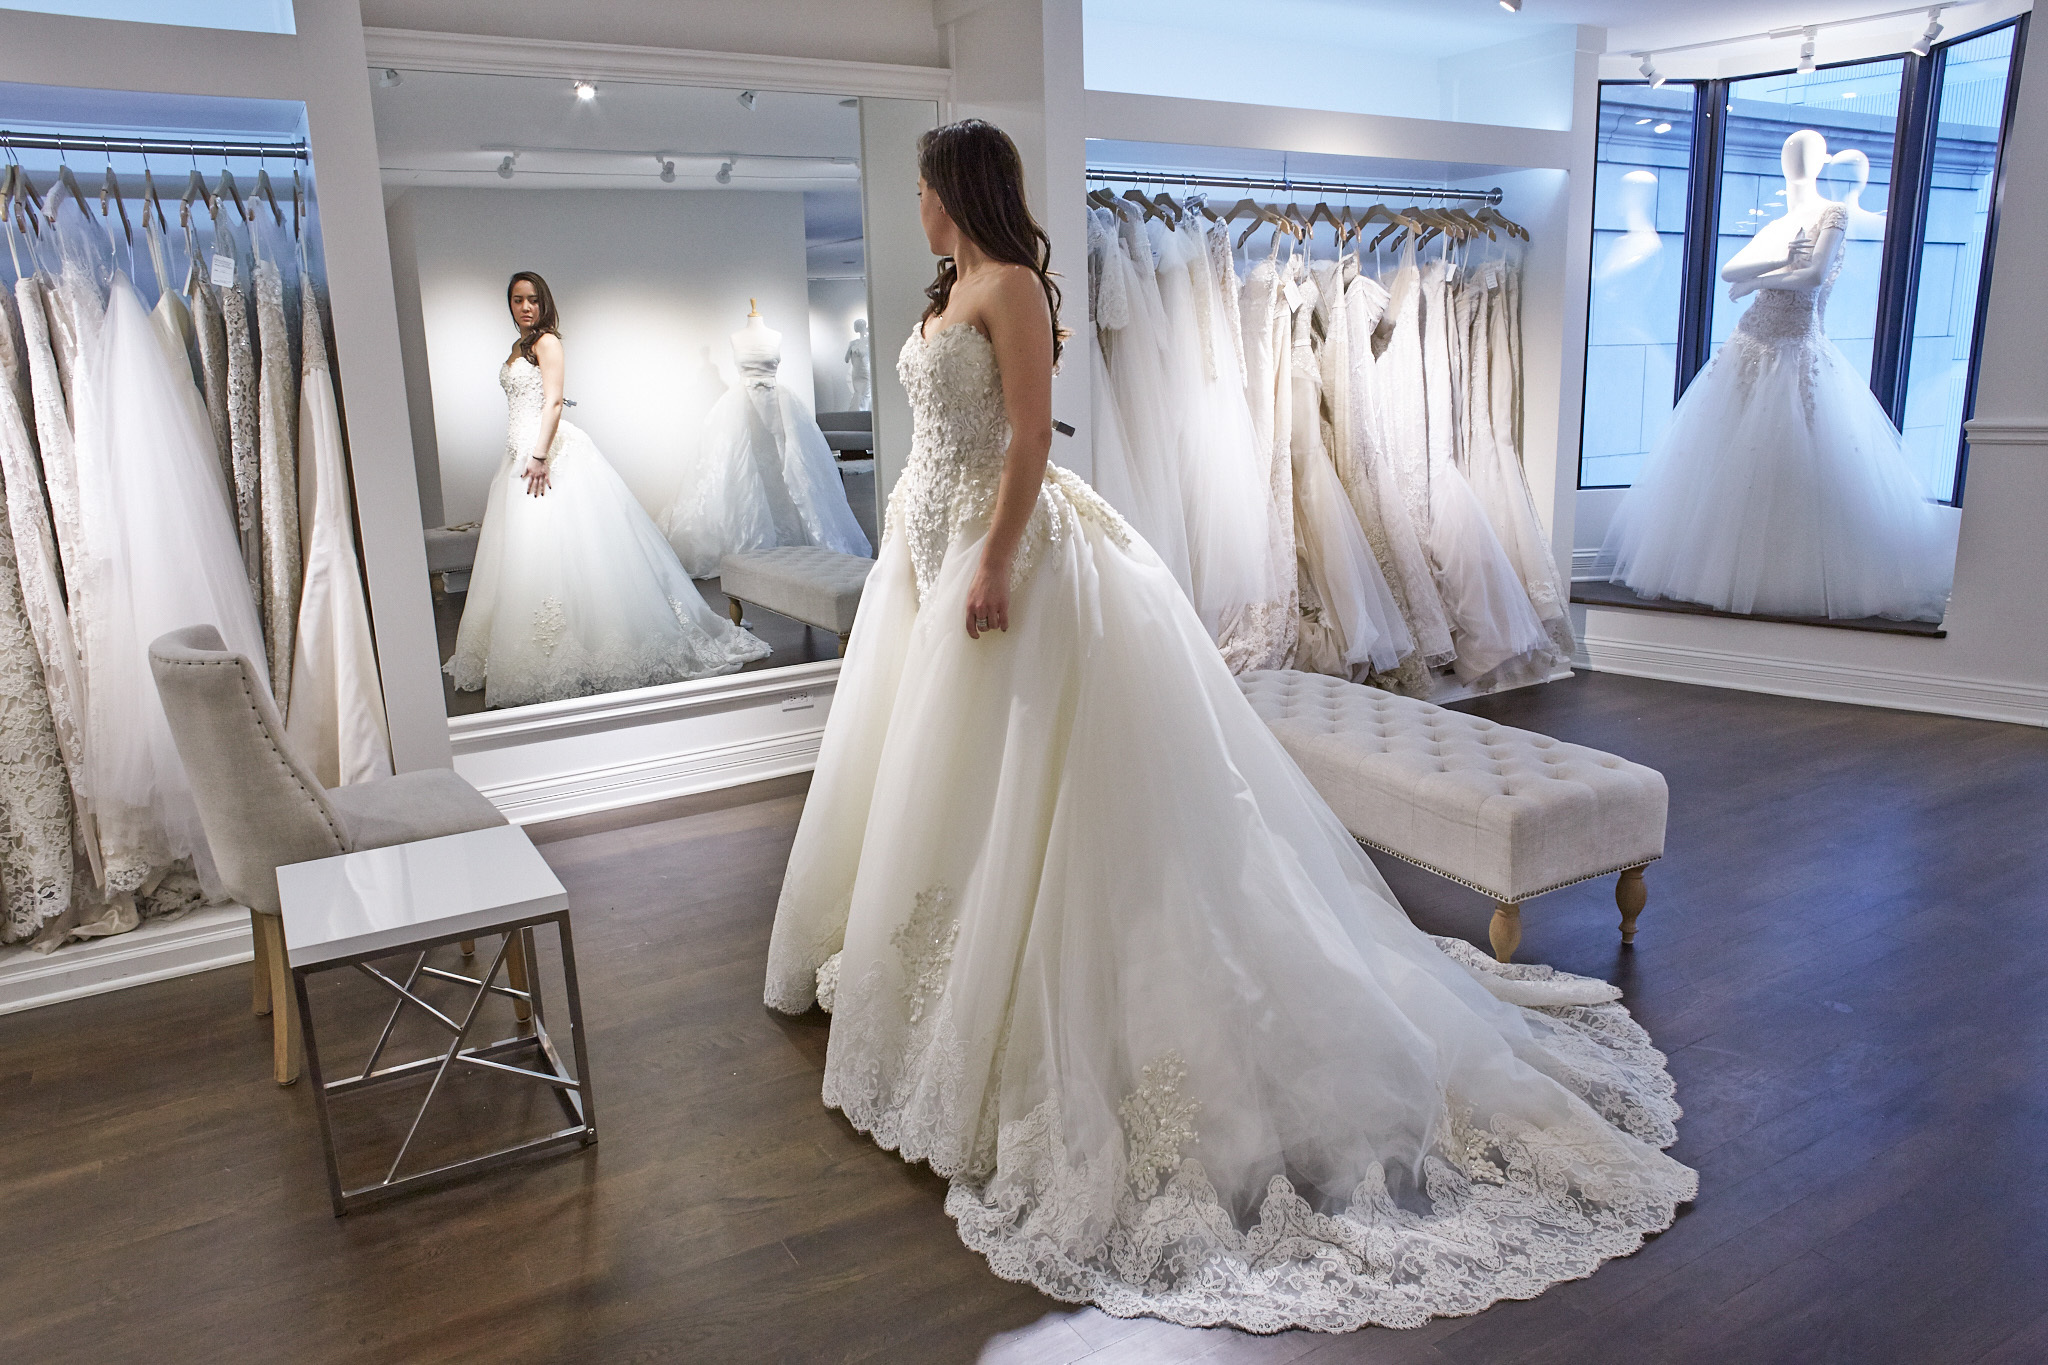 The best bridal shops in chicago for the perfect wedding dress for Shop online wedding dresses